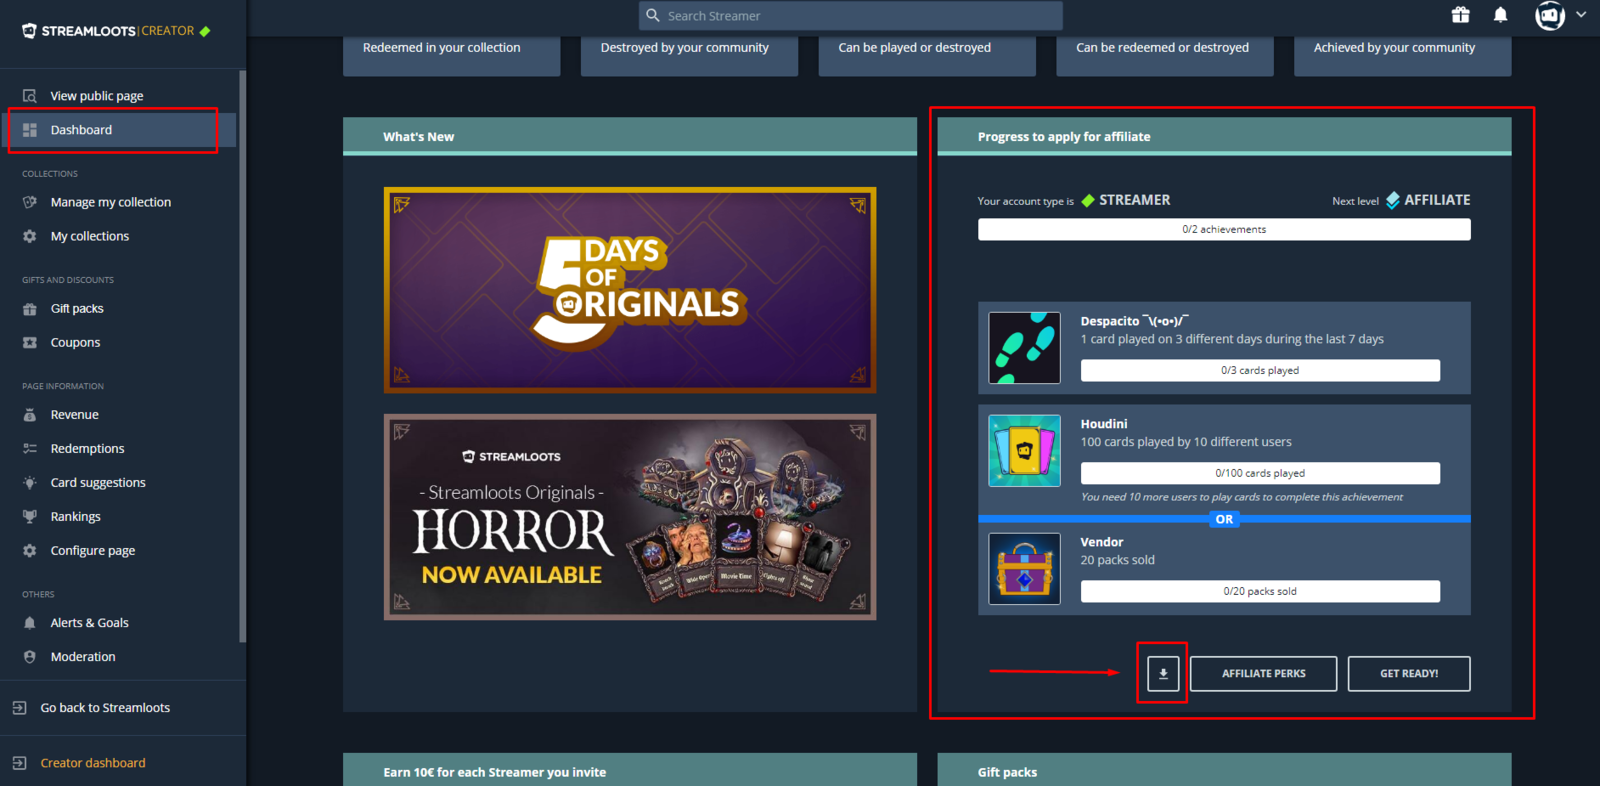 The button to download panels for streamers, affiliates and partners